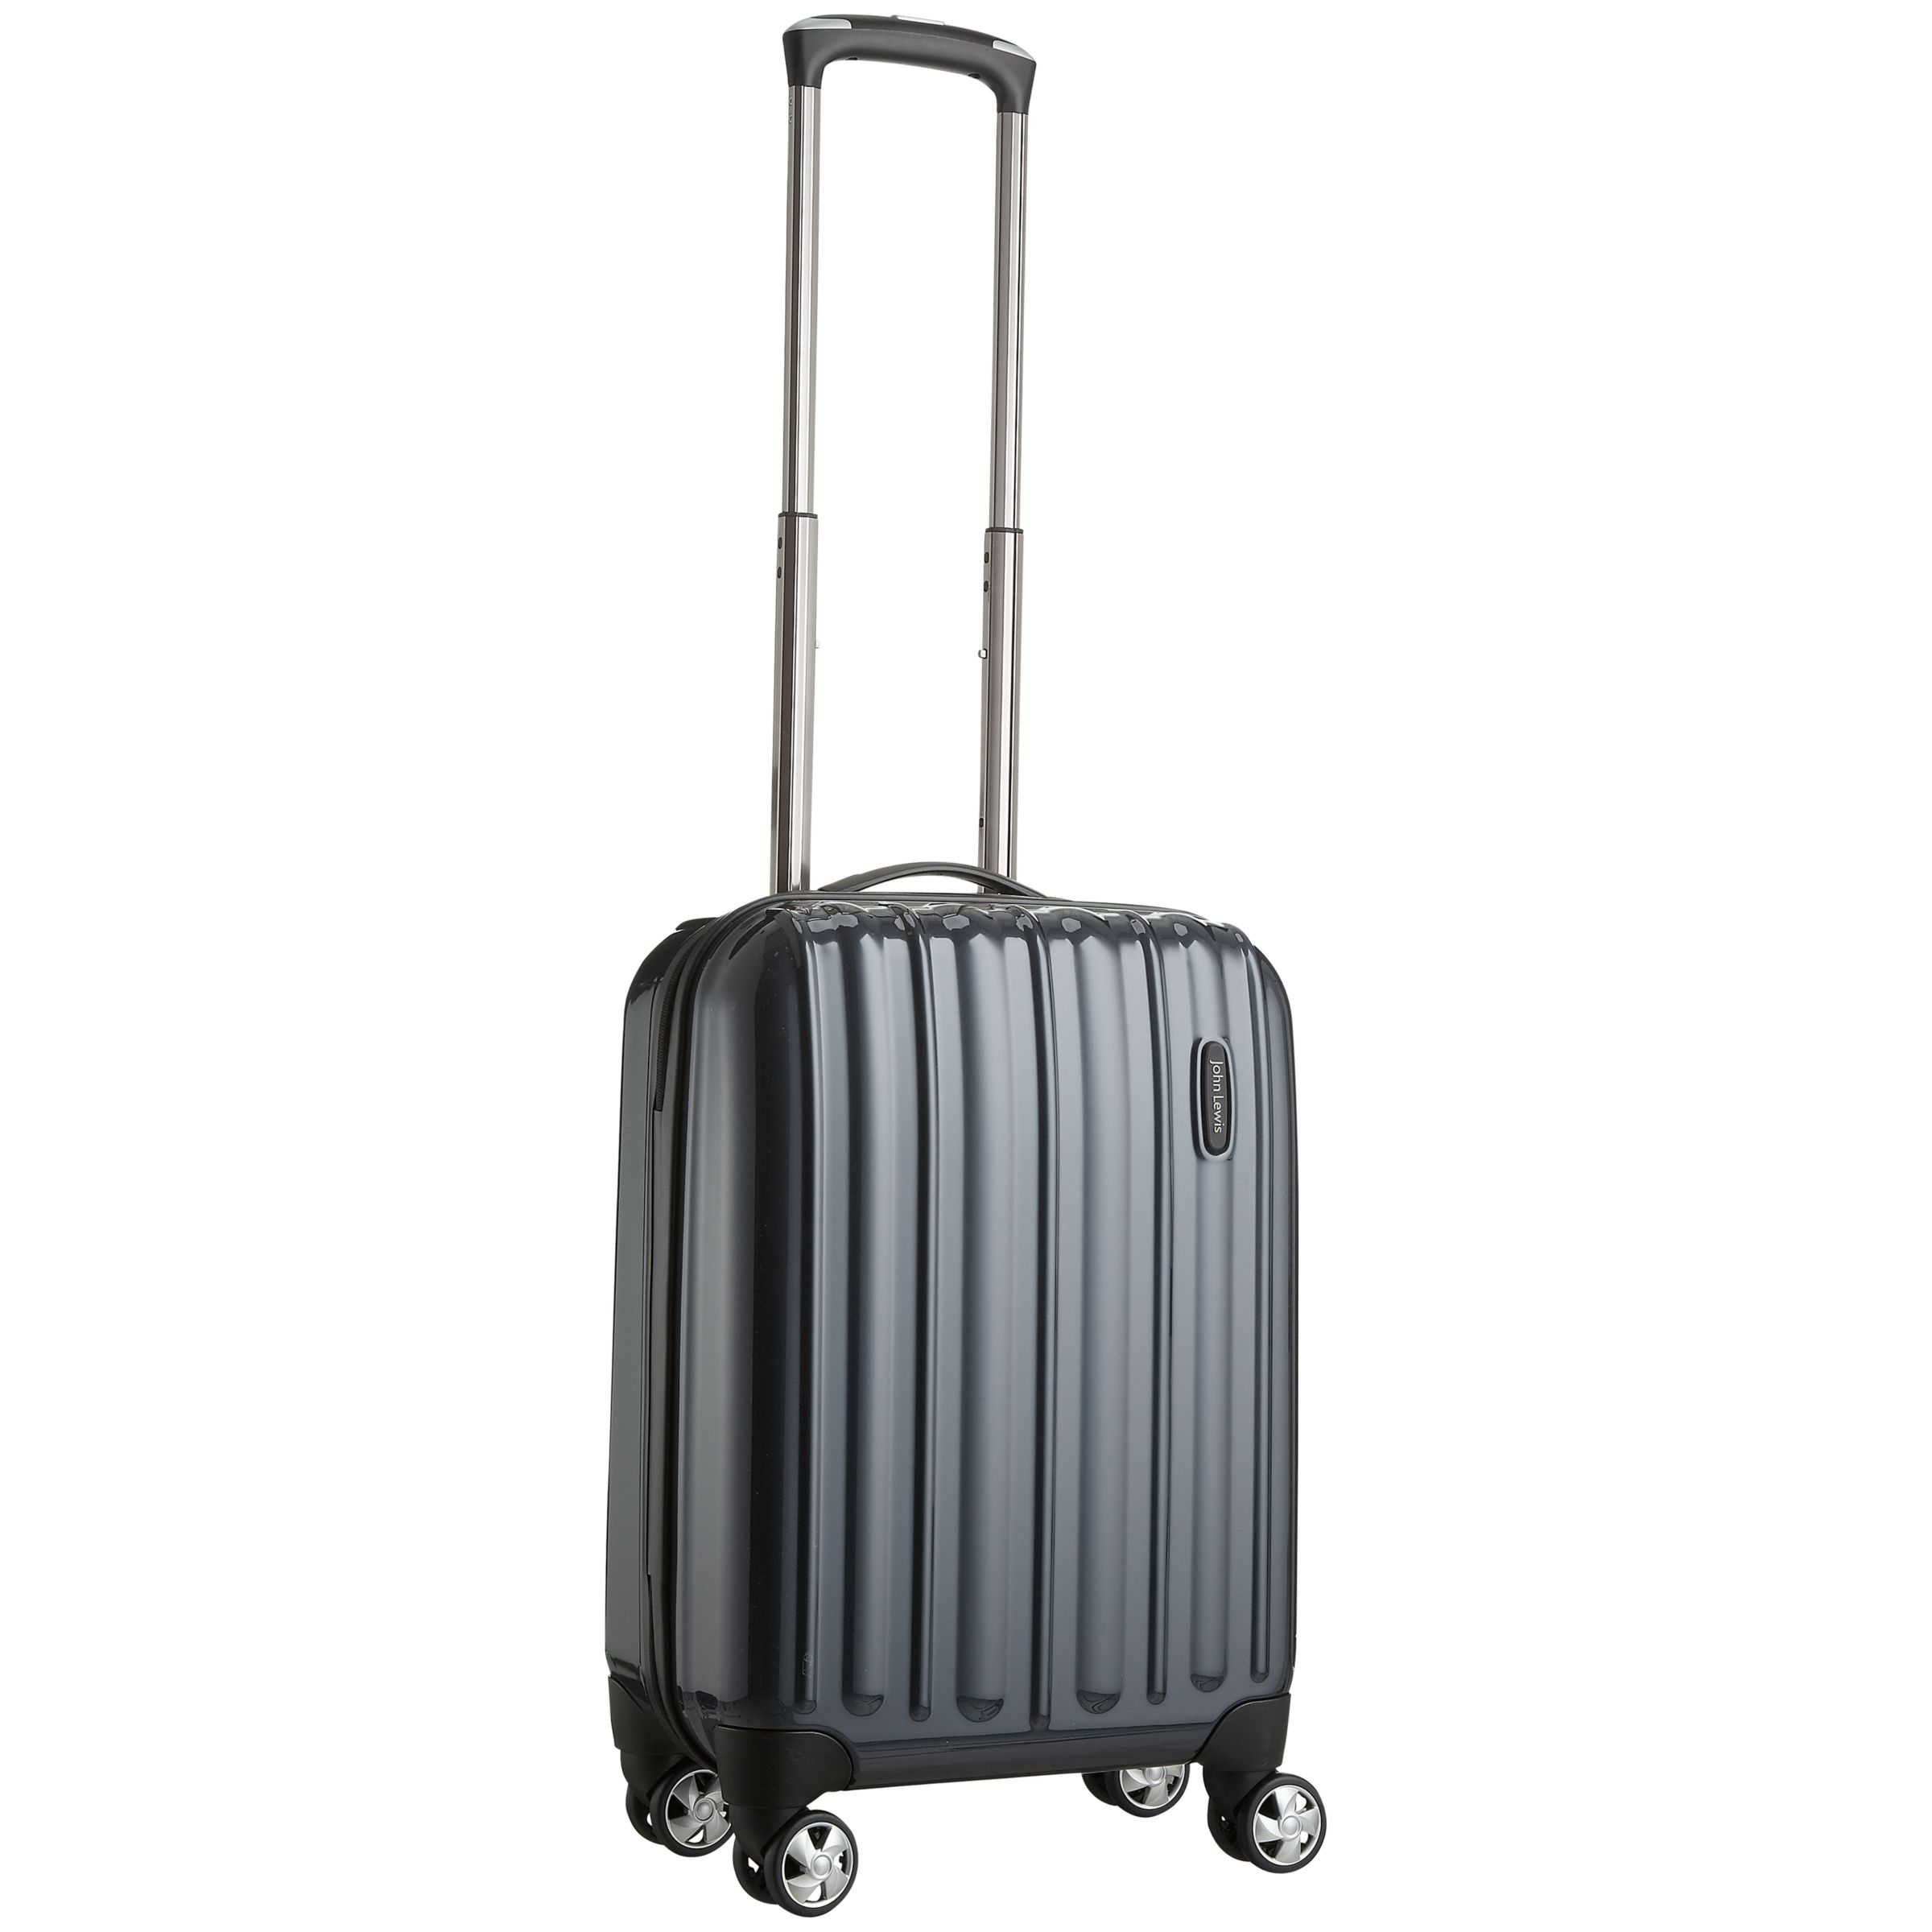 John Lewis Monaco 4-Wheel Spinner Suitcase, Teal